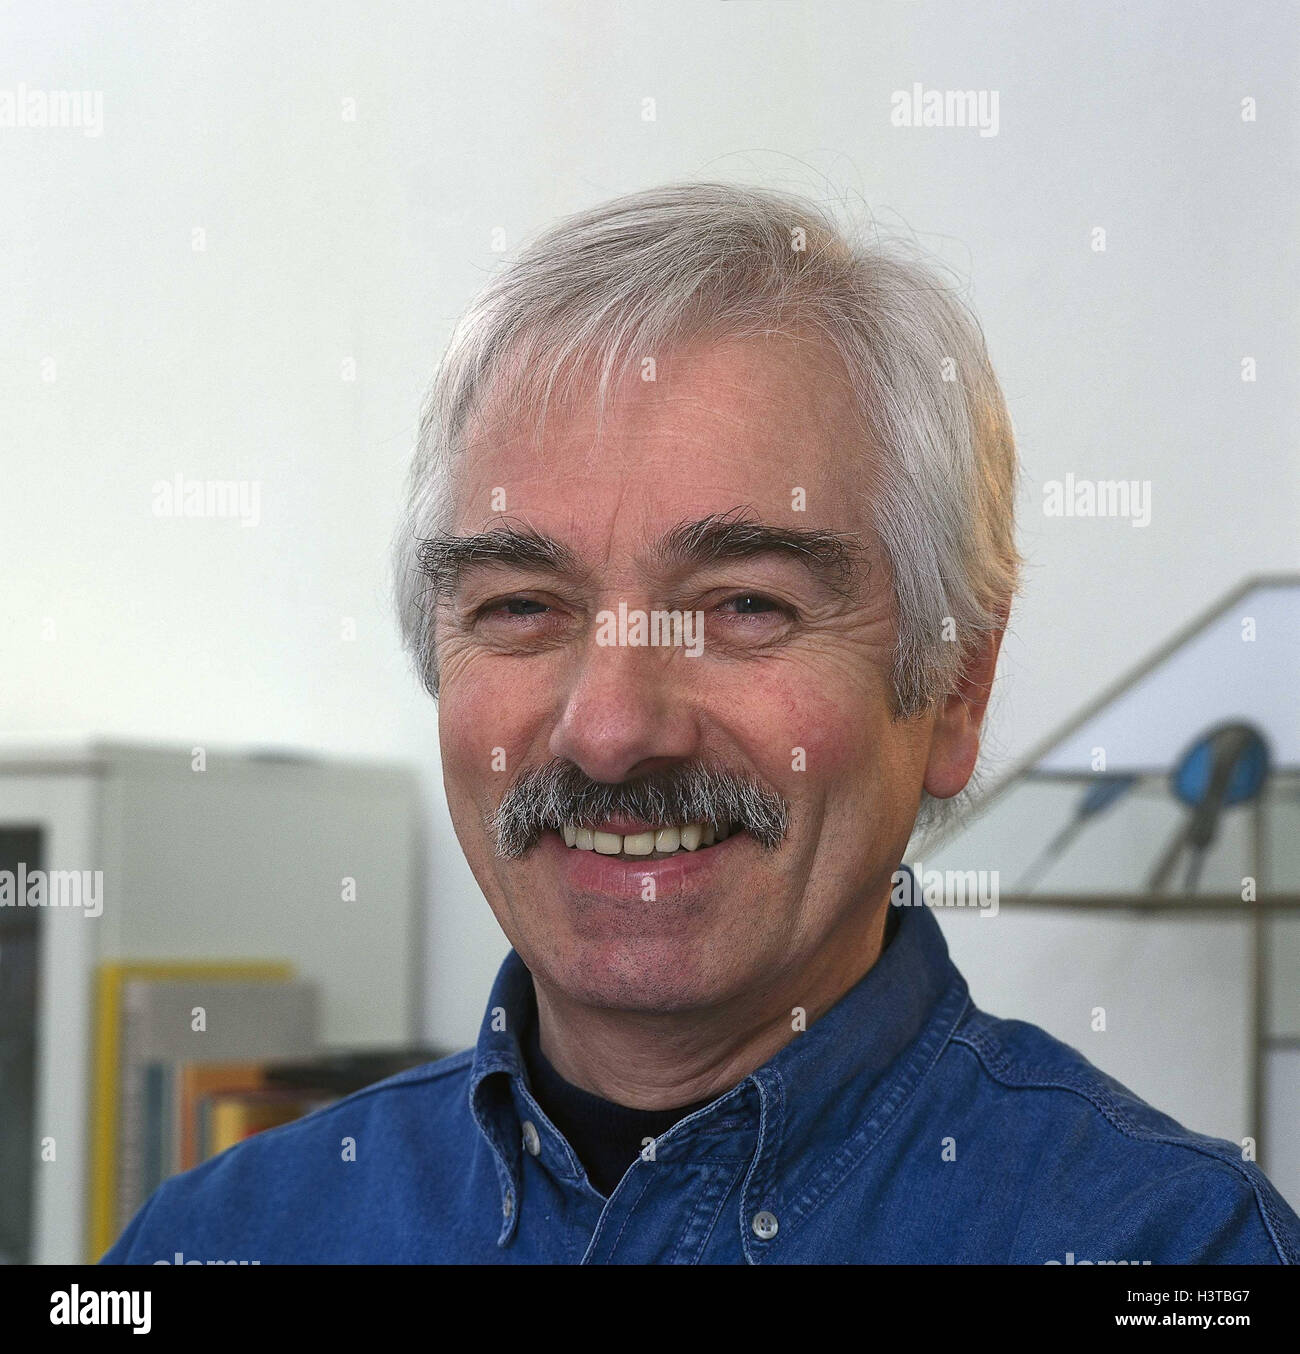 Man, smile, happy, grey-haired, moustache, portrait, inside, man's portrait, middle old person, view camera, - Stock Image